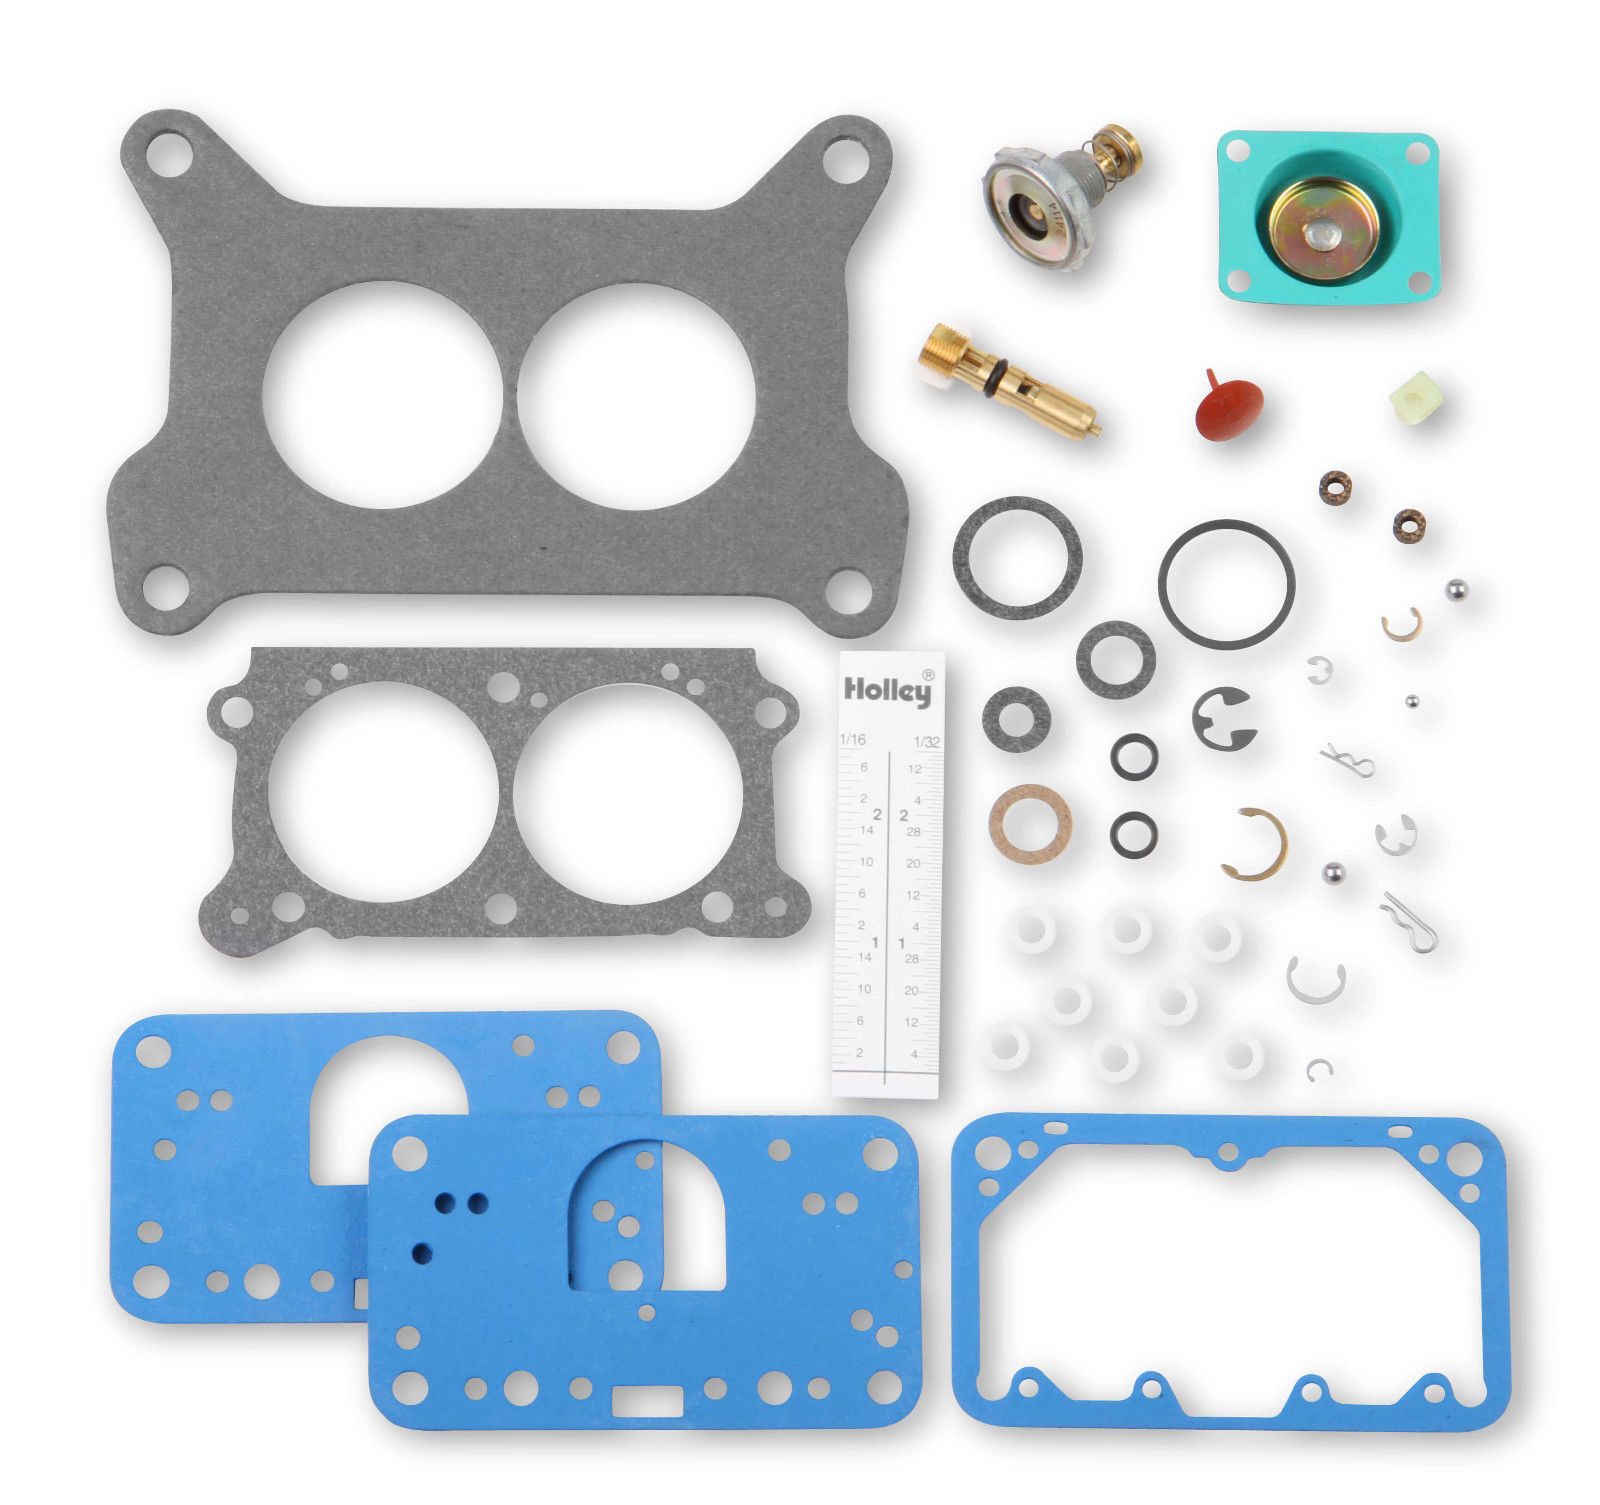 Holley 37-474 Carburetor Repair Kit 2 Barrel 4412 Model 2300 Rebuild TricKit